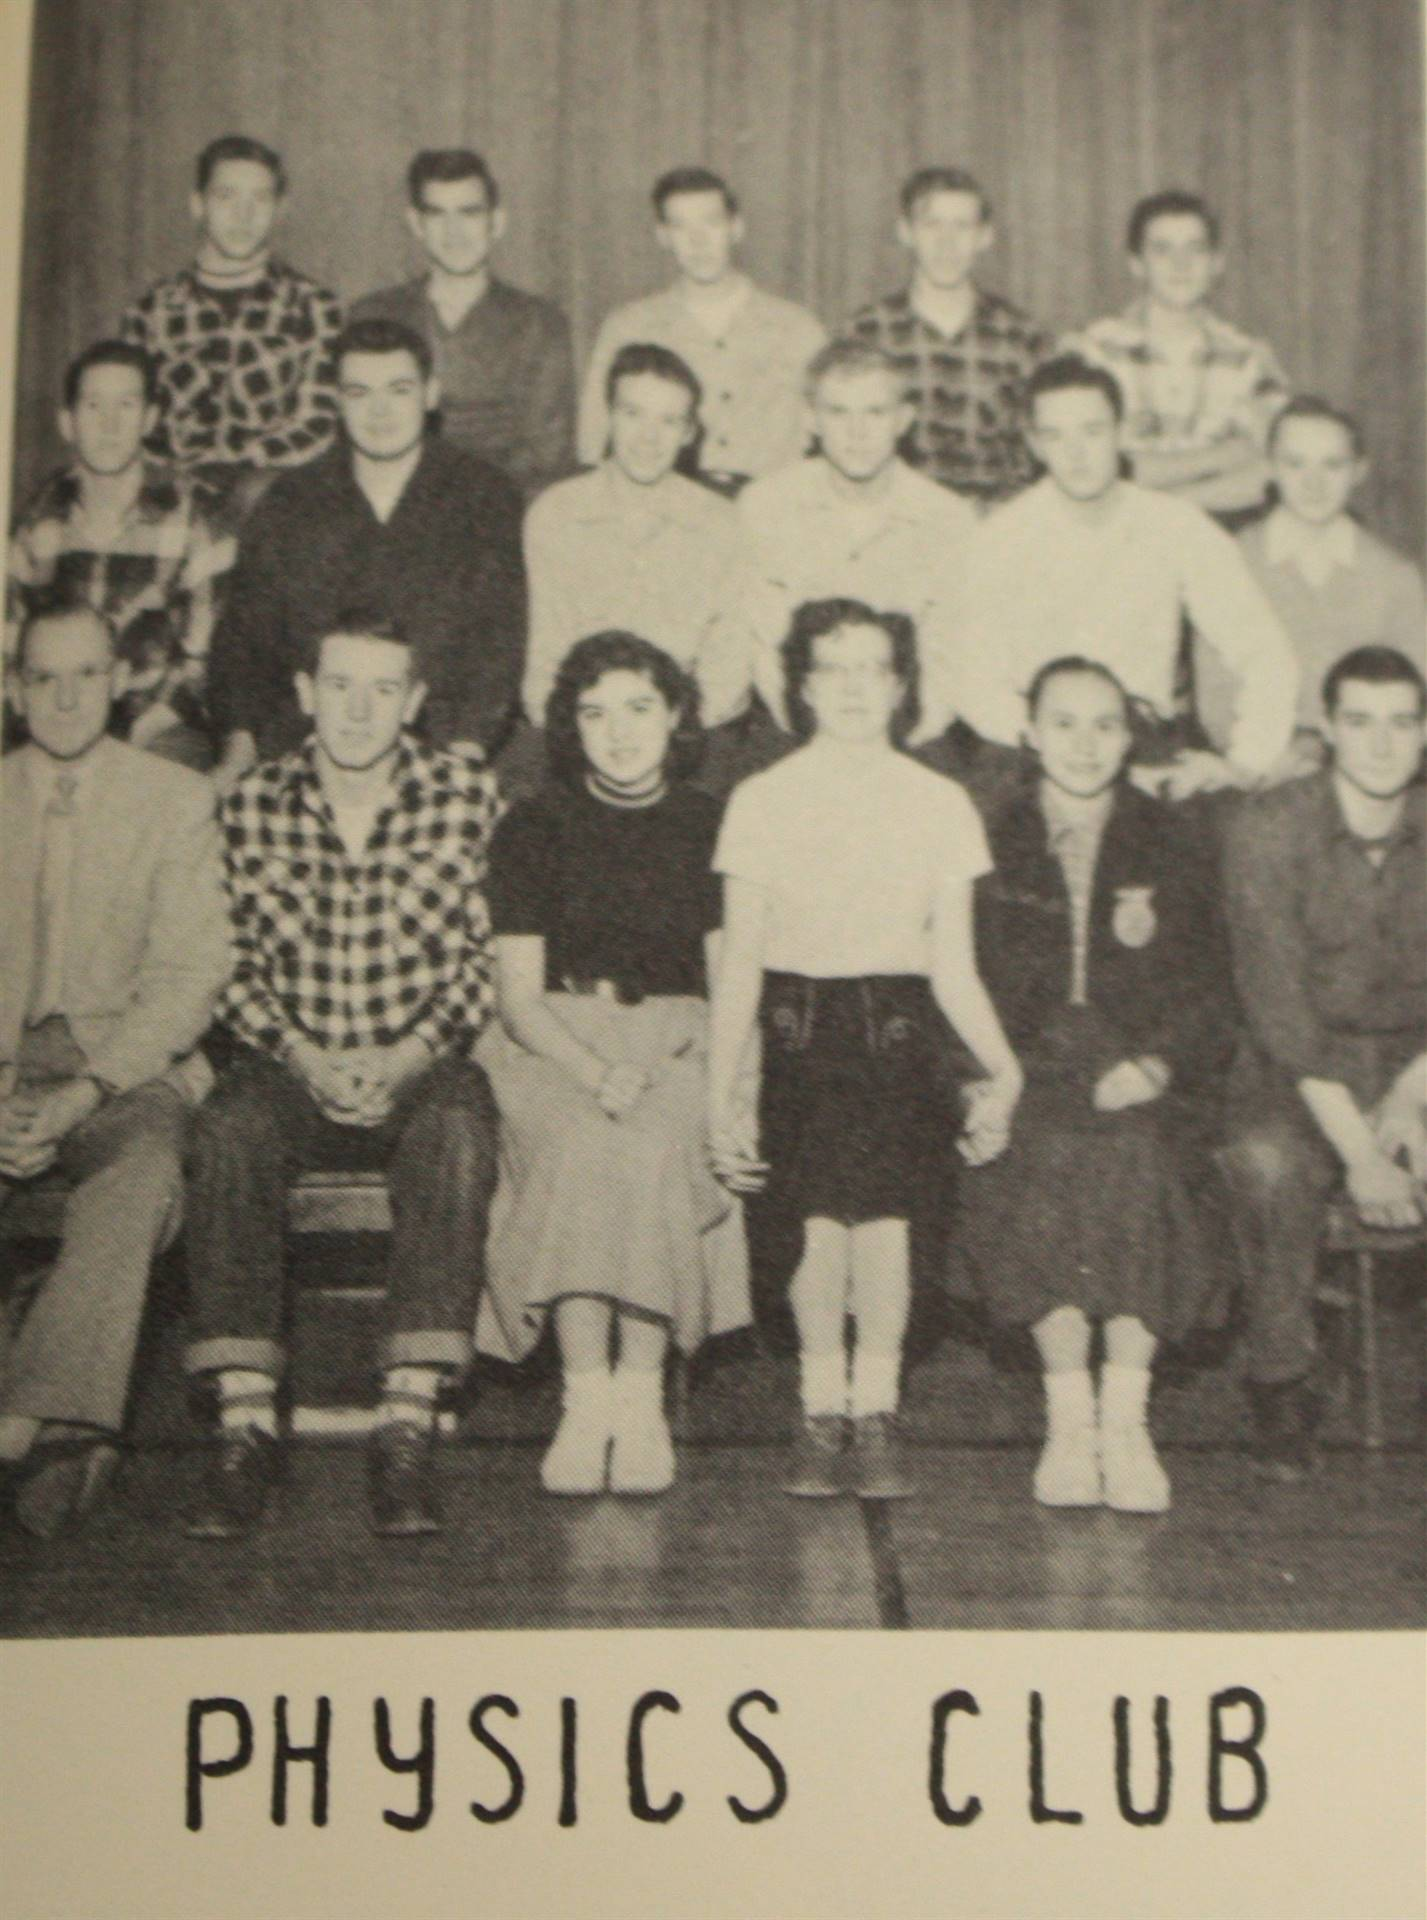 1953 physics club